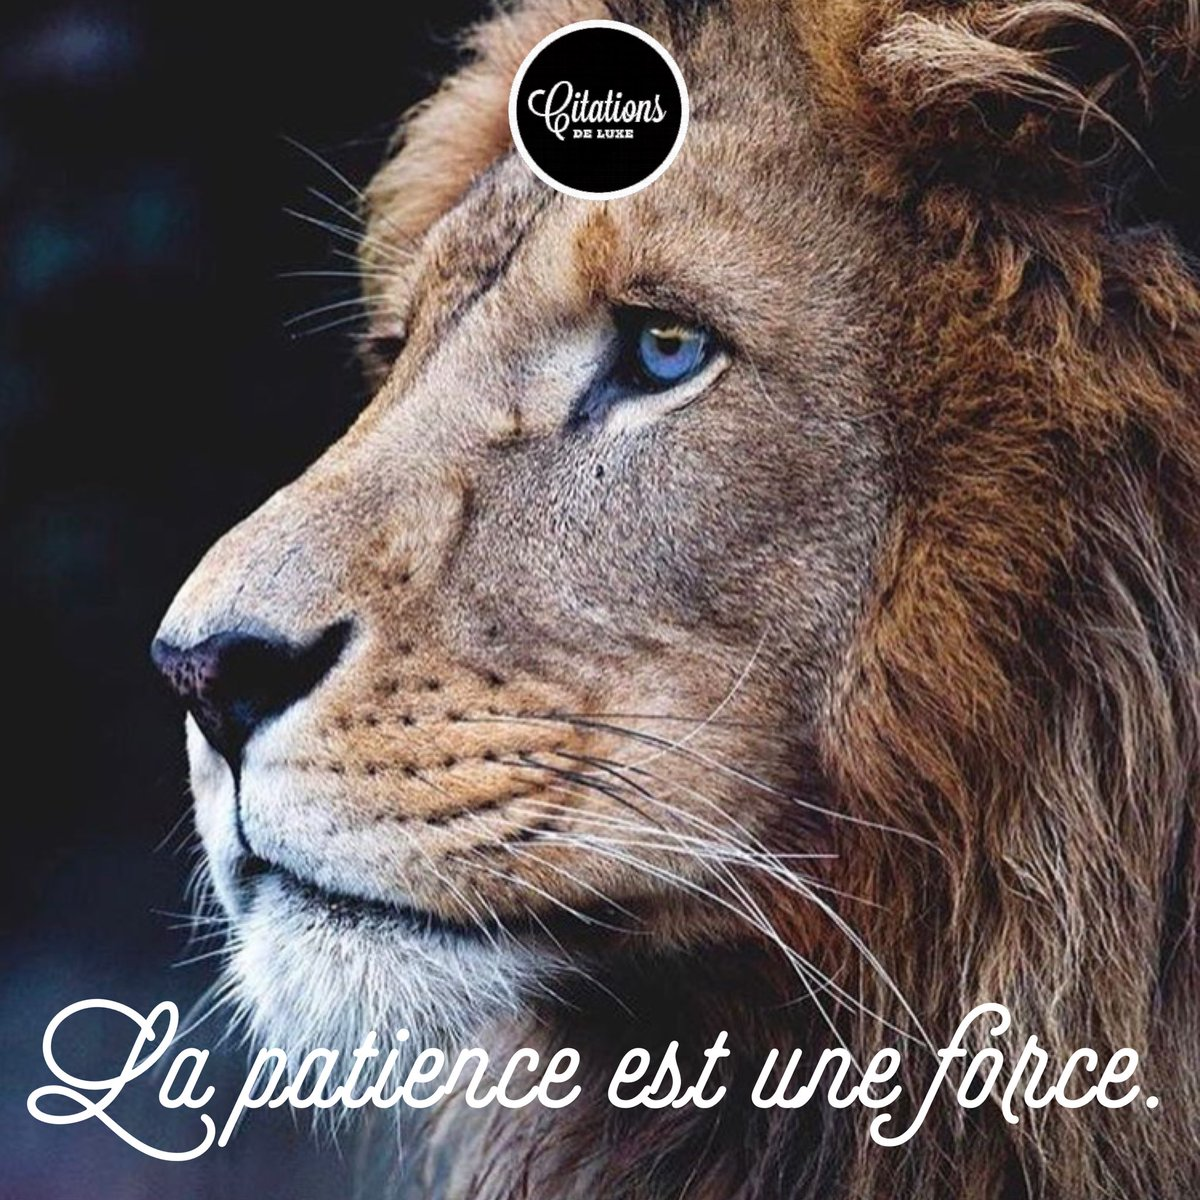 Citations De Luxe On Twitter La Patience Est Une Force